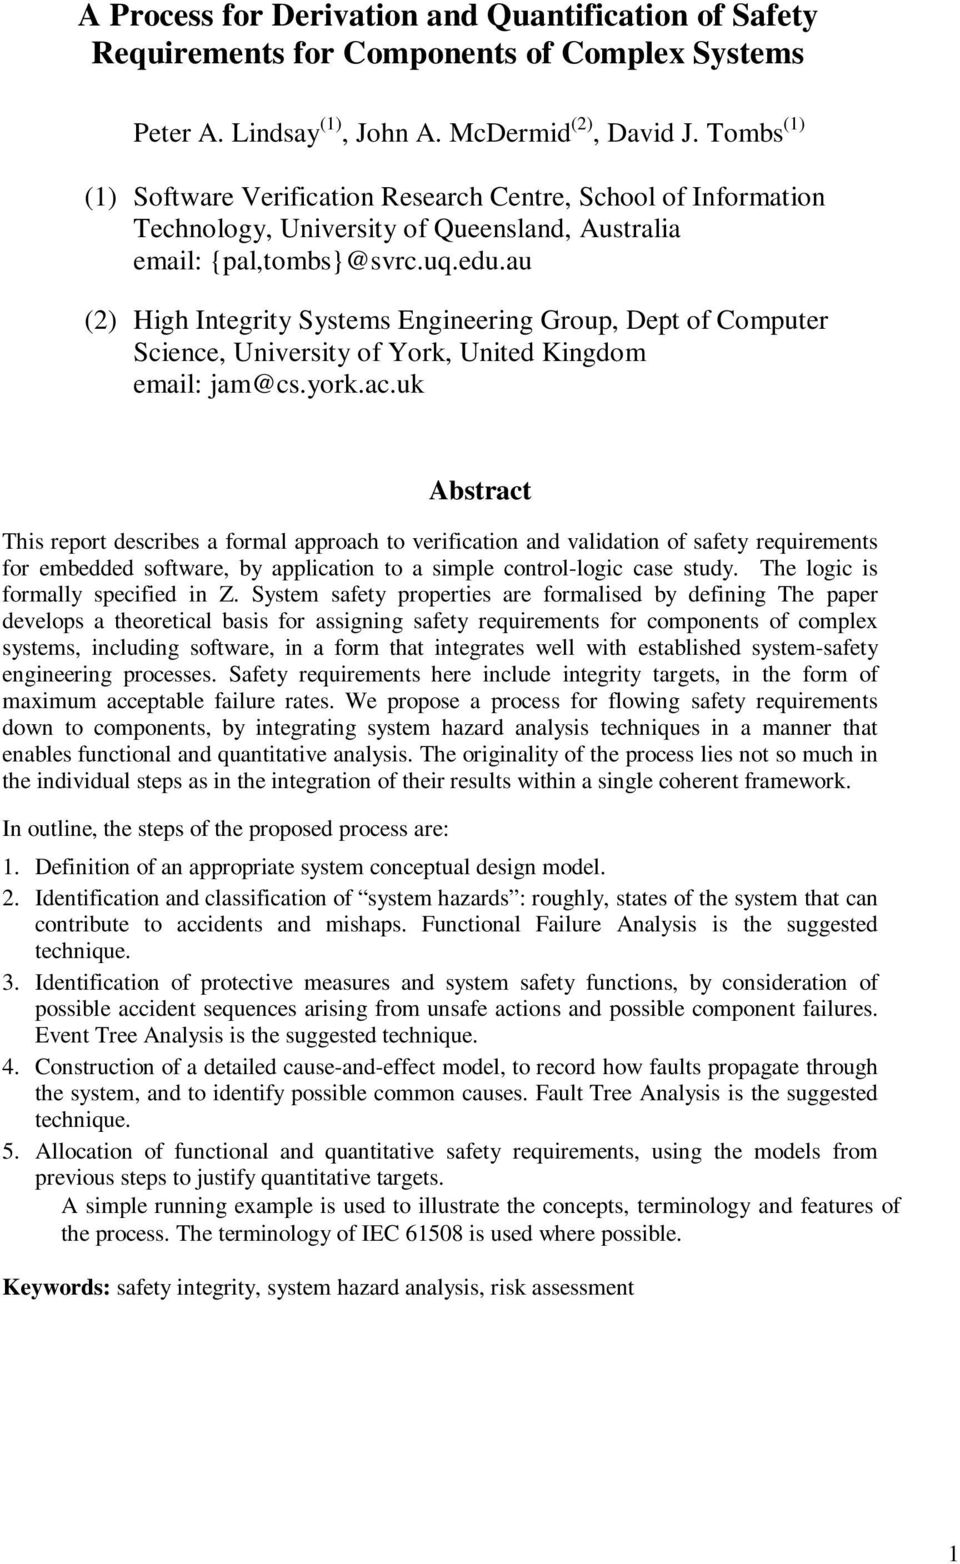 au (2) High Integrity Systems Engineering Group, Dept of Computer Science, University of York, United Kingdom email: jam@cs.york.ac.